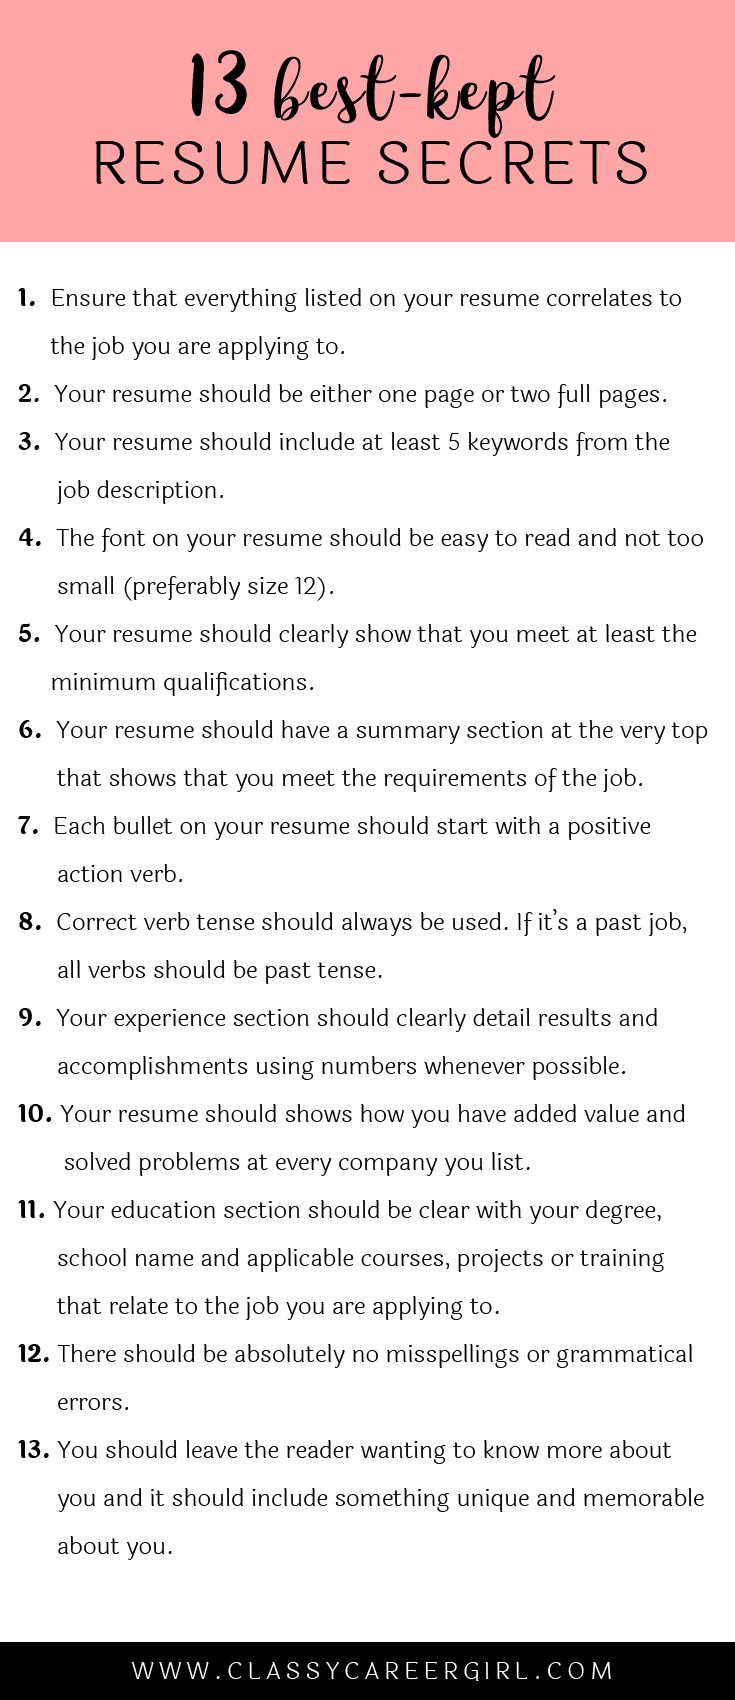 Opposenewapstandardsus  Splendid  Ideas About Resume On Pinterest  Cv Format Resume  With Goodlooking Some Hiring Managers Will Toss Your Resume Out If You Dont Know These  With Amusing Senior Software Engineer Resume Sample Also Marketing Skills For Resume In Addition Cover Letter For Teacher Resume And Sample Resume For Forklift Operator As Well As Restaurant Manager Sample Resume Additionally Putting Volunteer Work On Resume From Pinterestcom With Opposenewapstandardsus  Goodlooking  Ideas About Resume On Pinterest  Cv Format Resume  With Amusing Some Hiring Managers Will Toss Your Resume Out If You Dont Know These  And Splendid Senior Software Engineer Resume Sample Also Marketing Skills For Resume In Addition Cover Letter For Teacher Resume From Pinterestcom